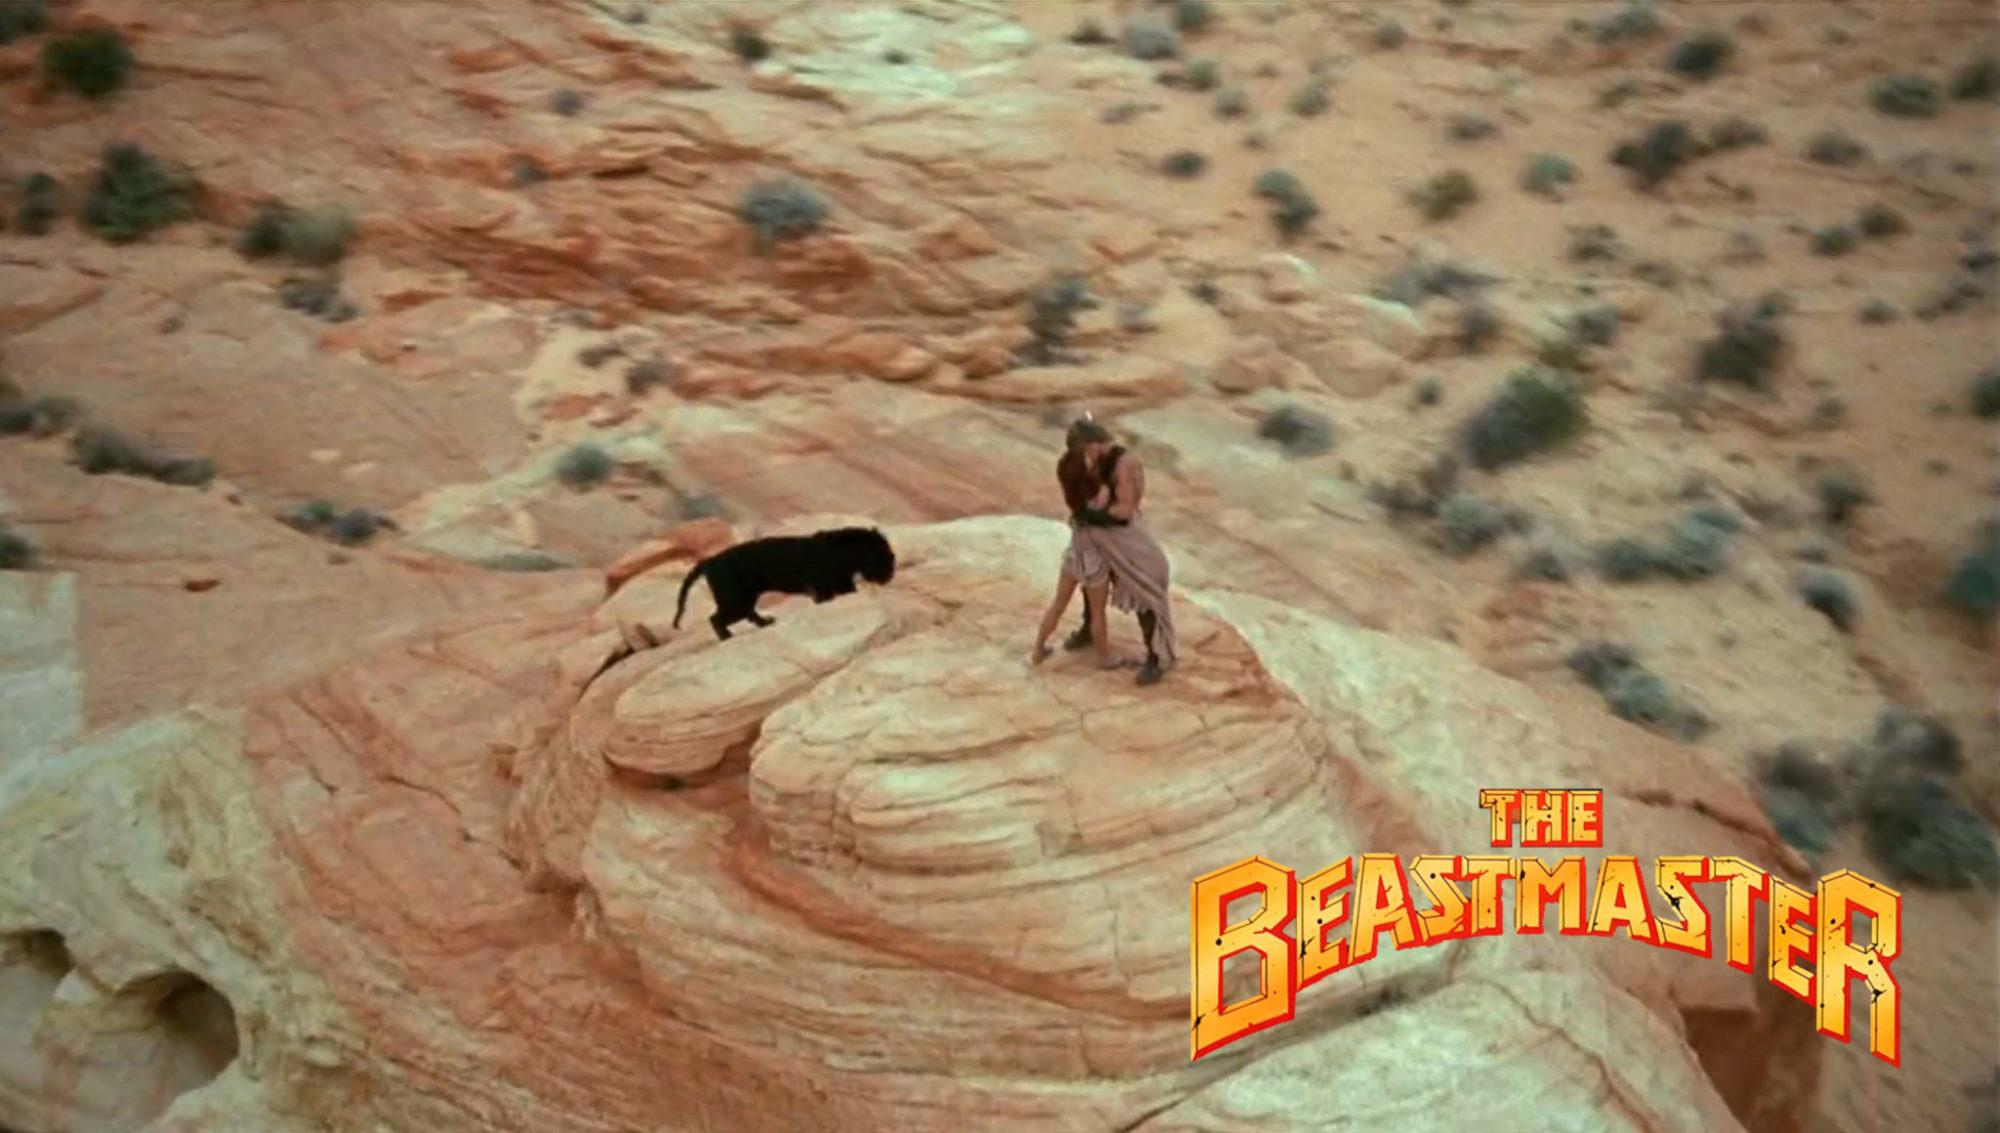 Marc Singer and Tanya Roberts in The Beastmaster